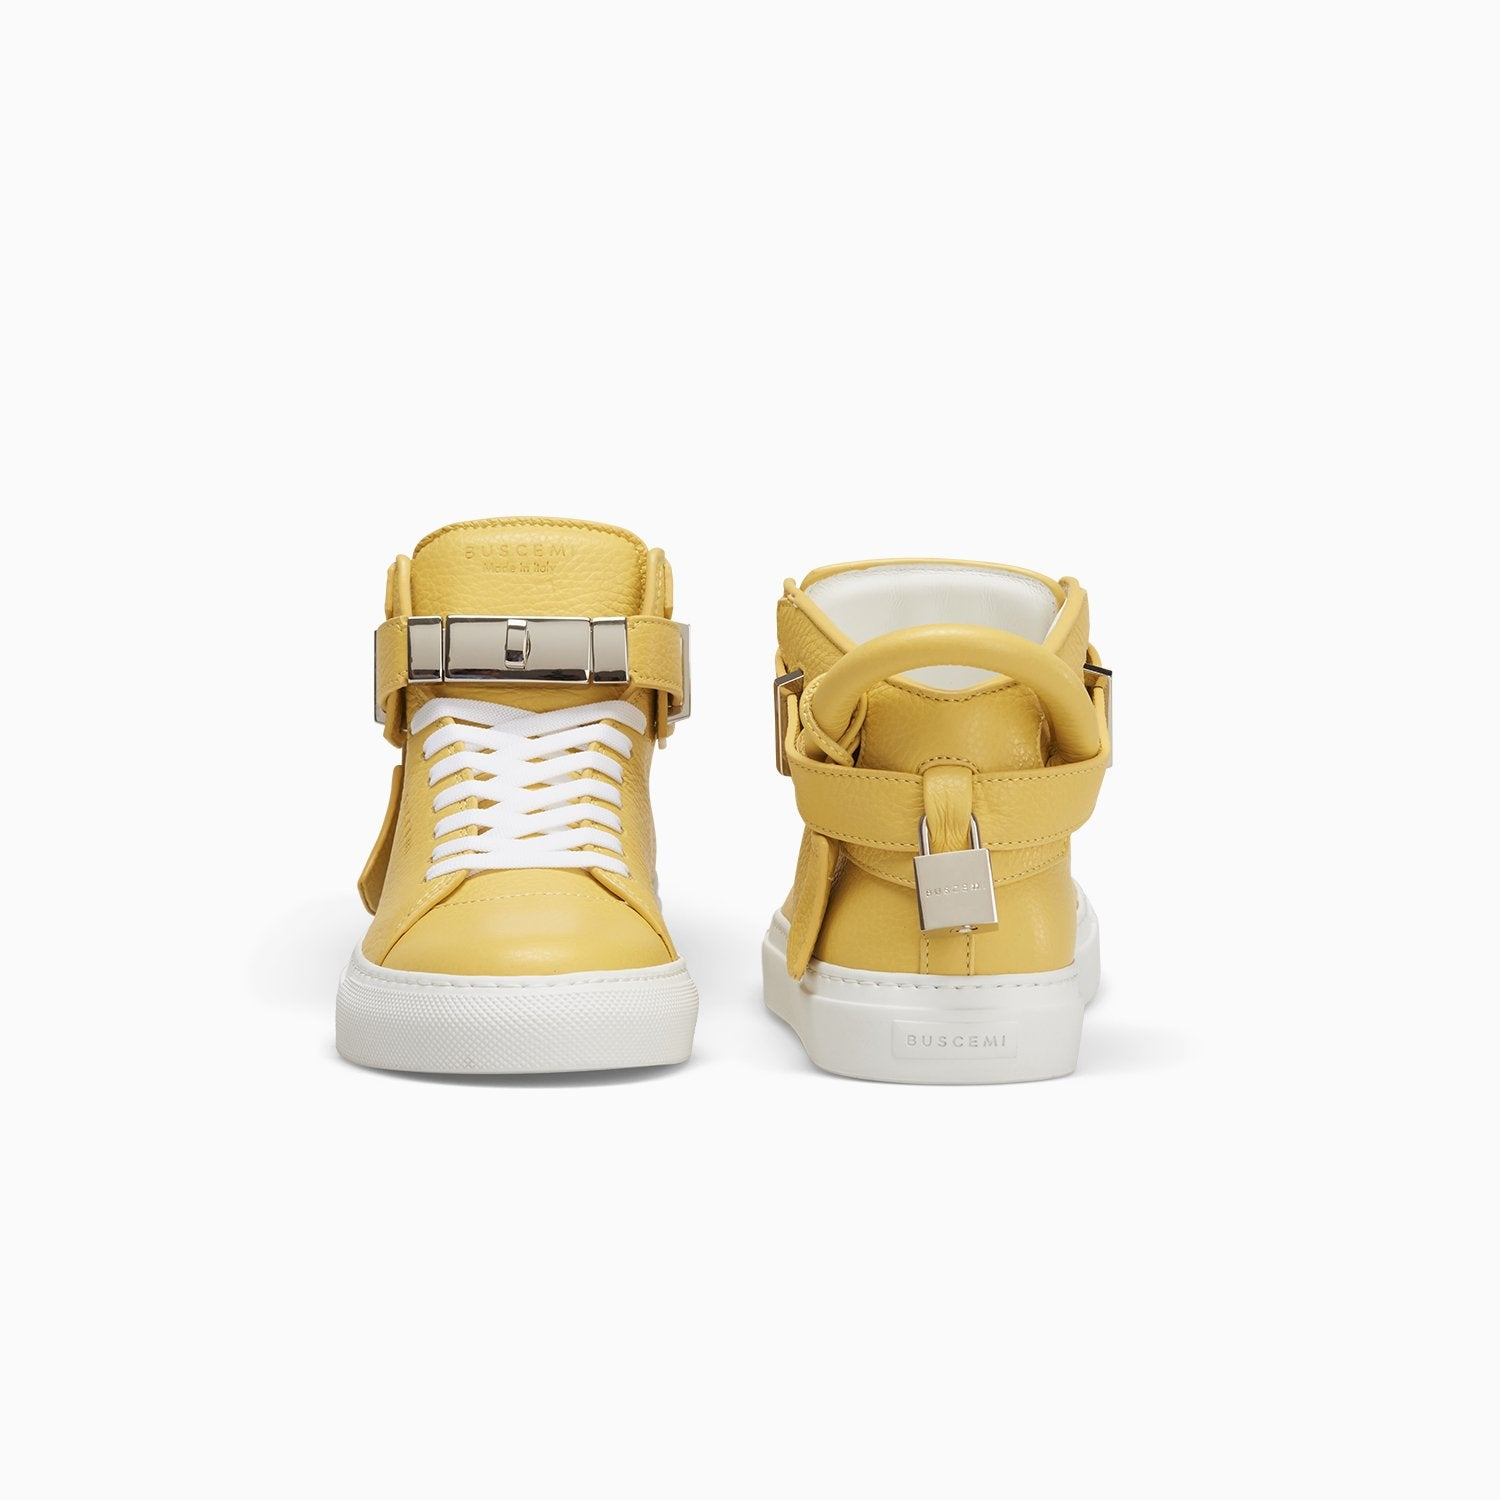 100MM | Yellow-Buscemi